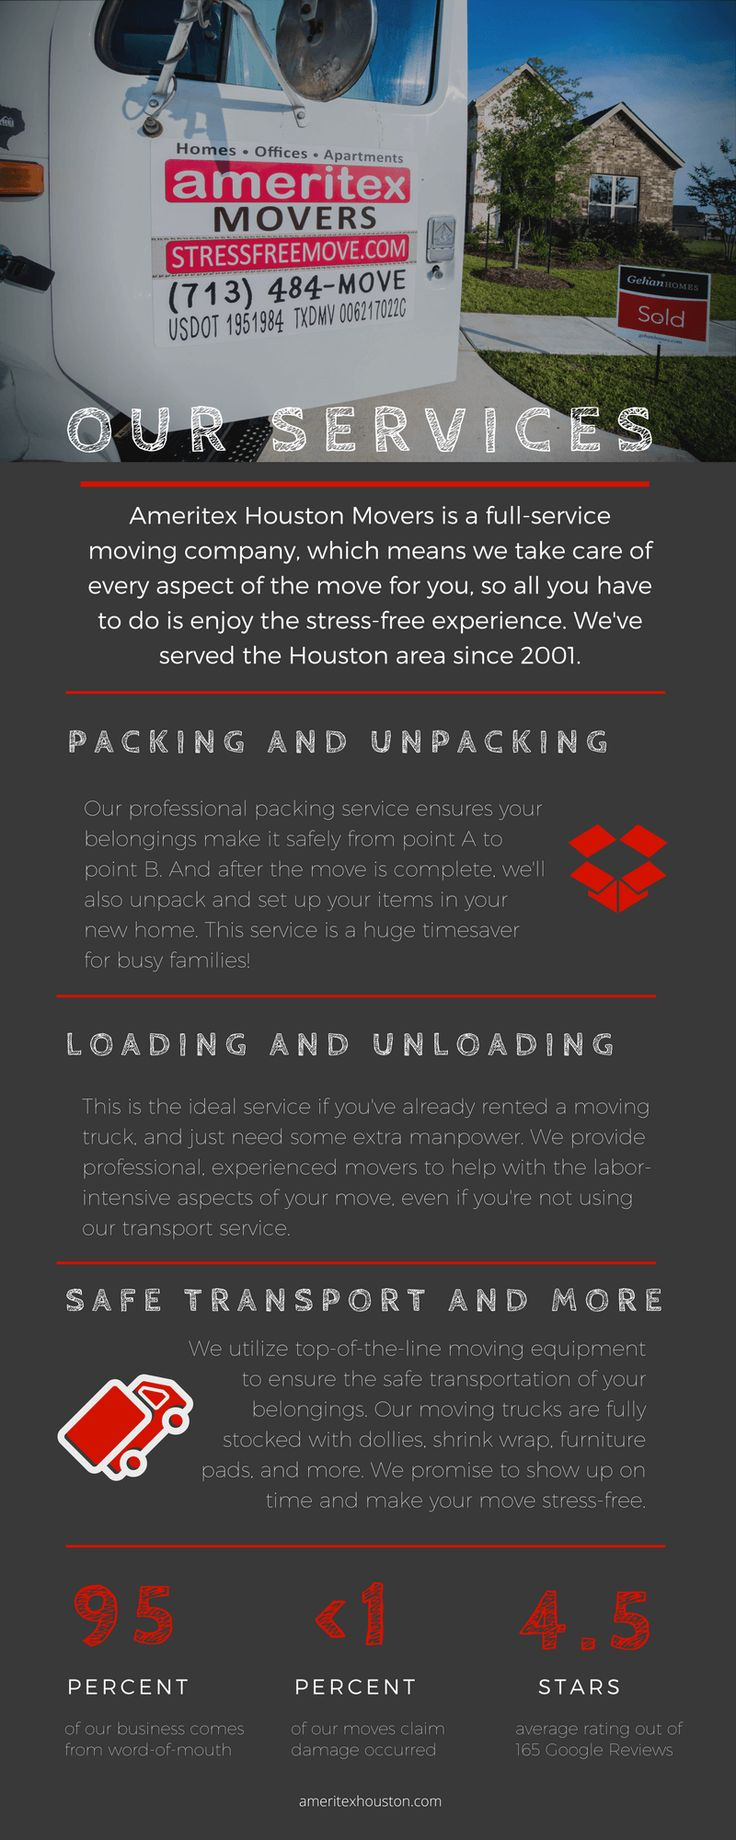 Ameritex Movers is a full-service moving company in Houston, Texas. Click to see how we can serve you. #houston #movers #movingcompany #houstonmovers #infographic #design